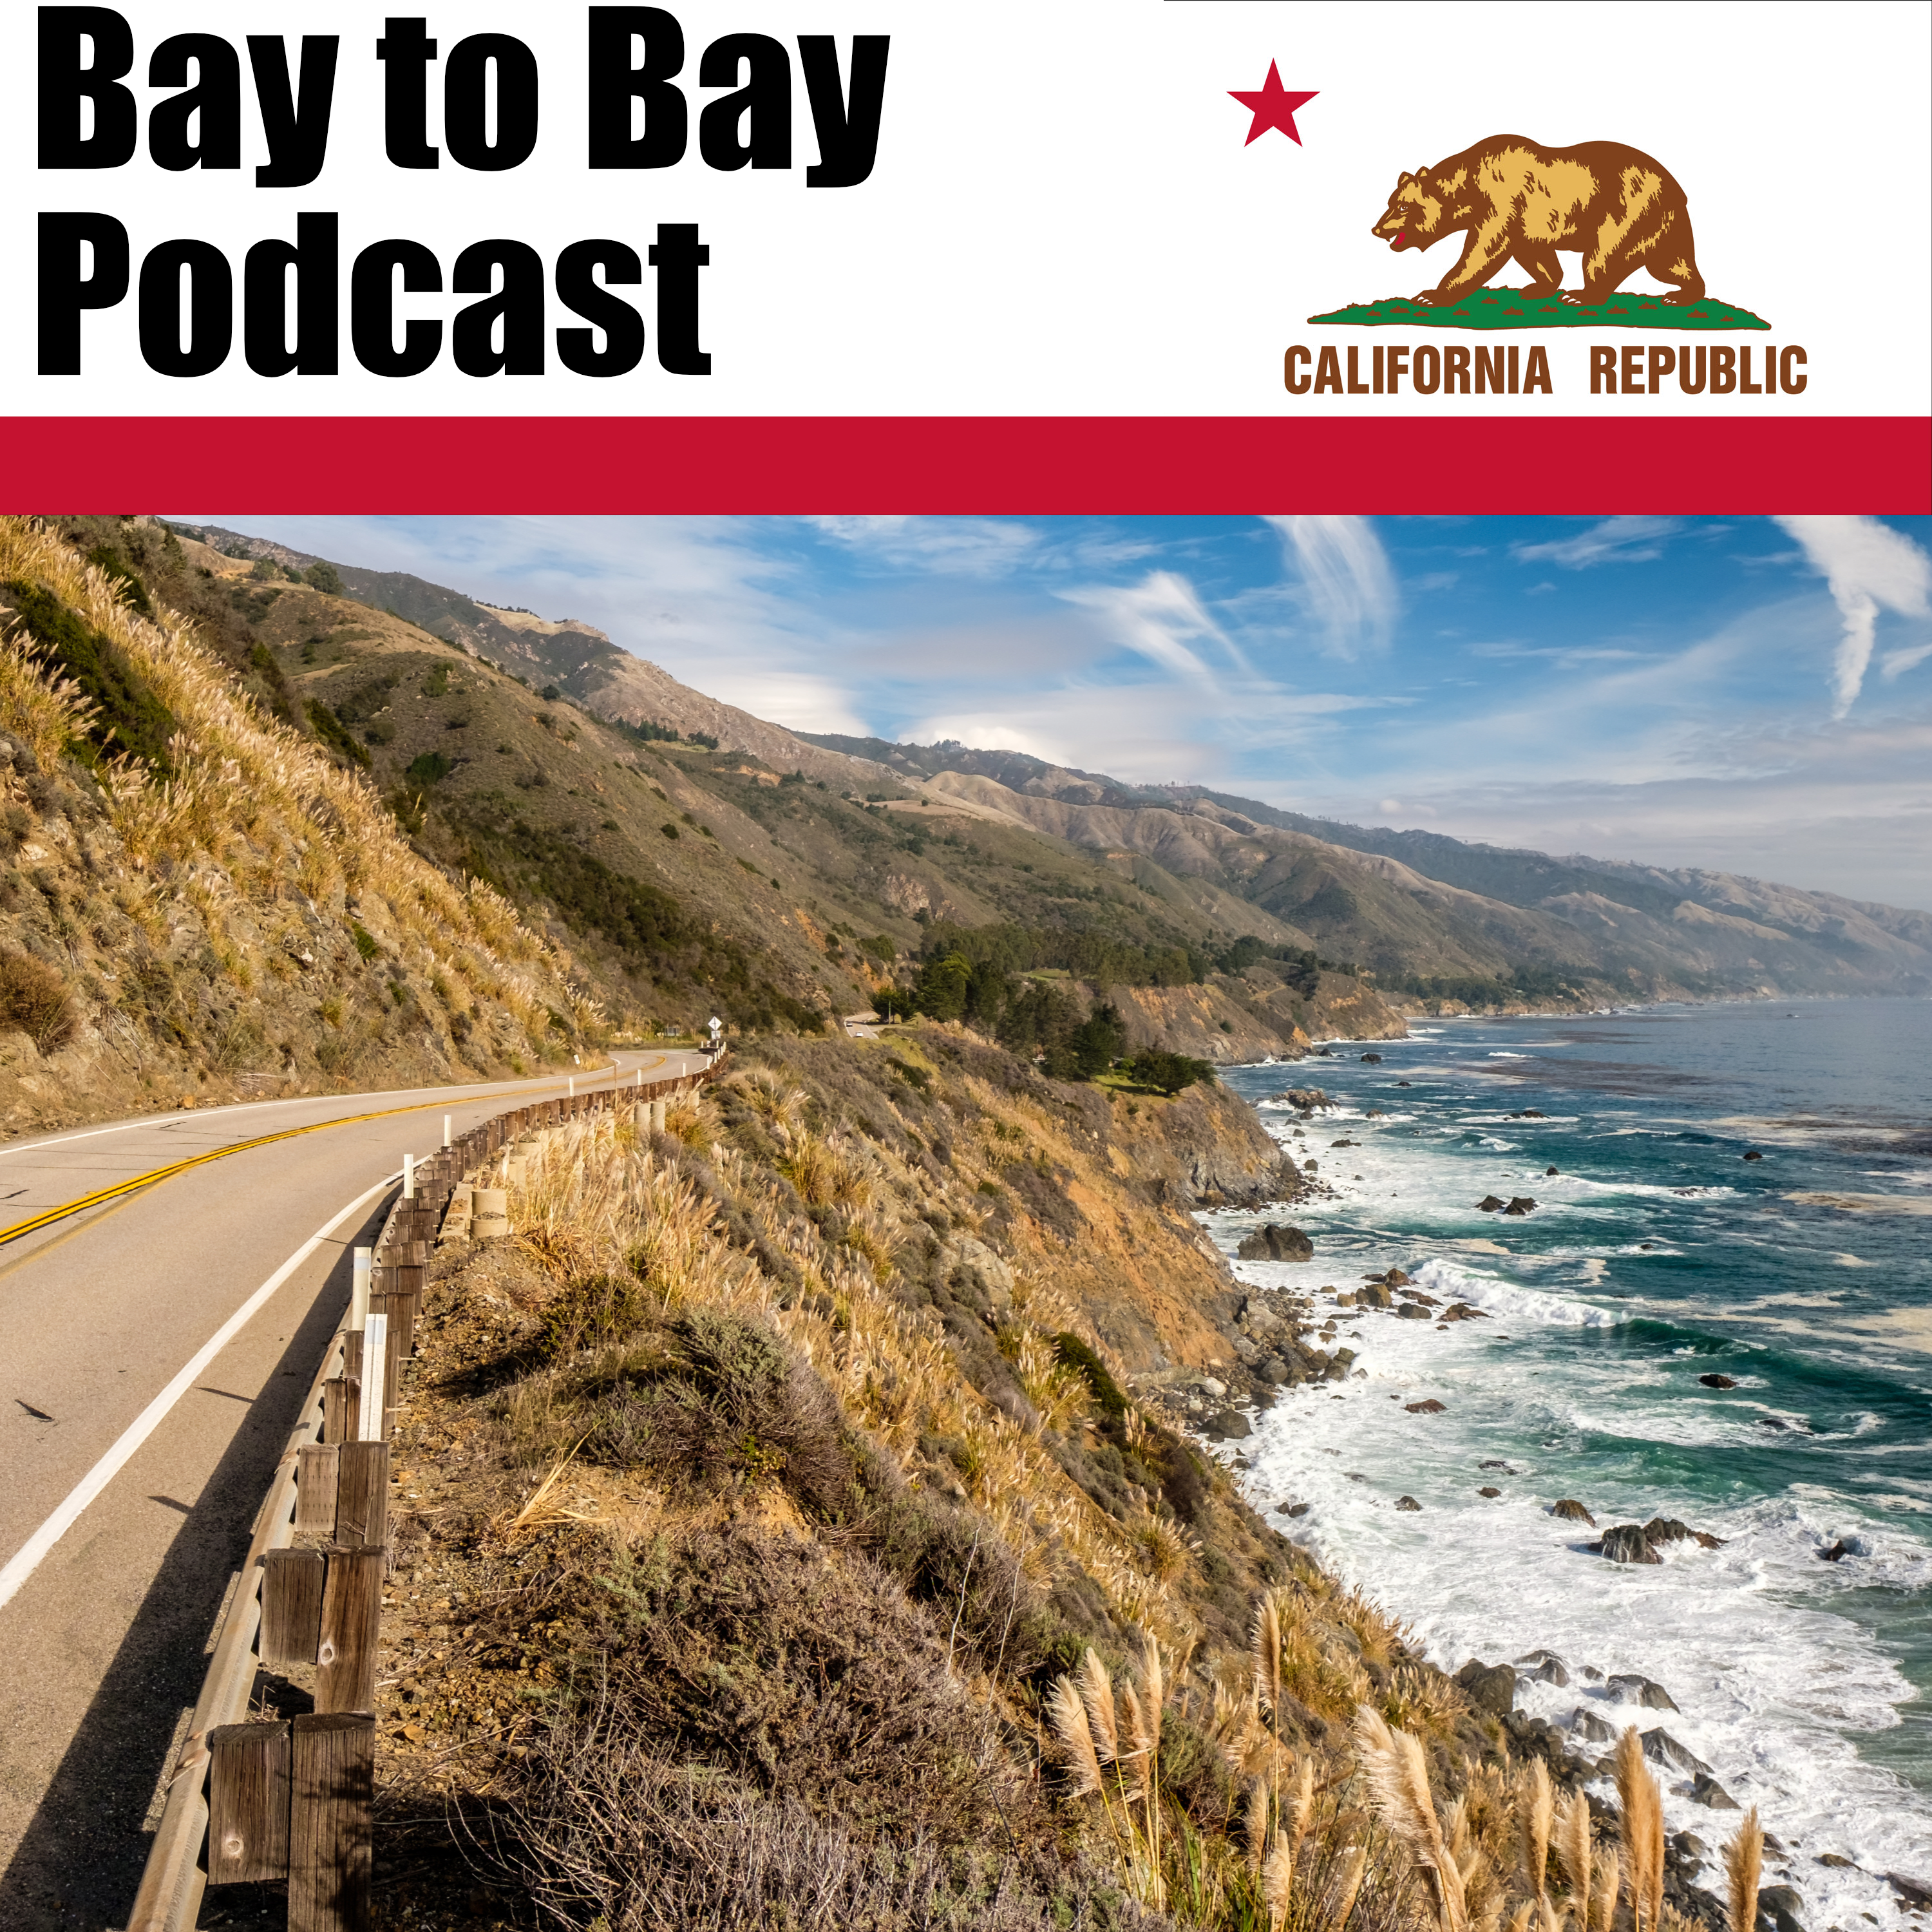 Bay to Bay Podcast